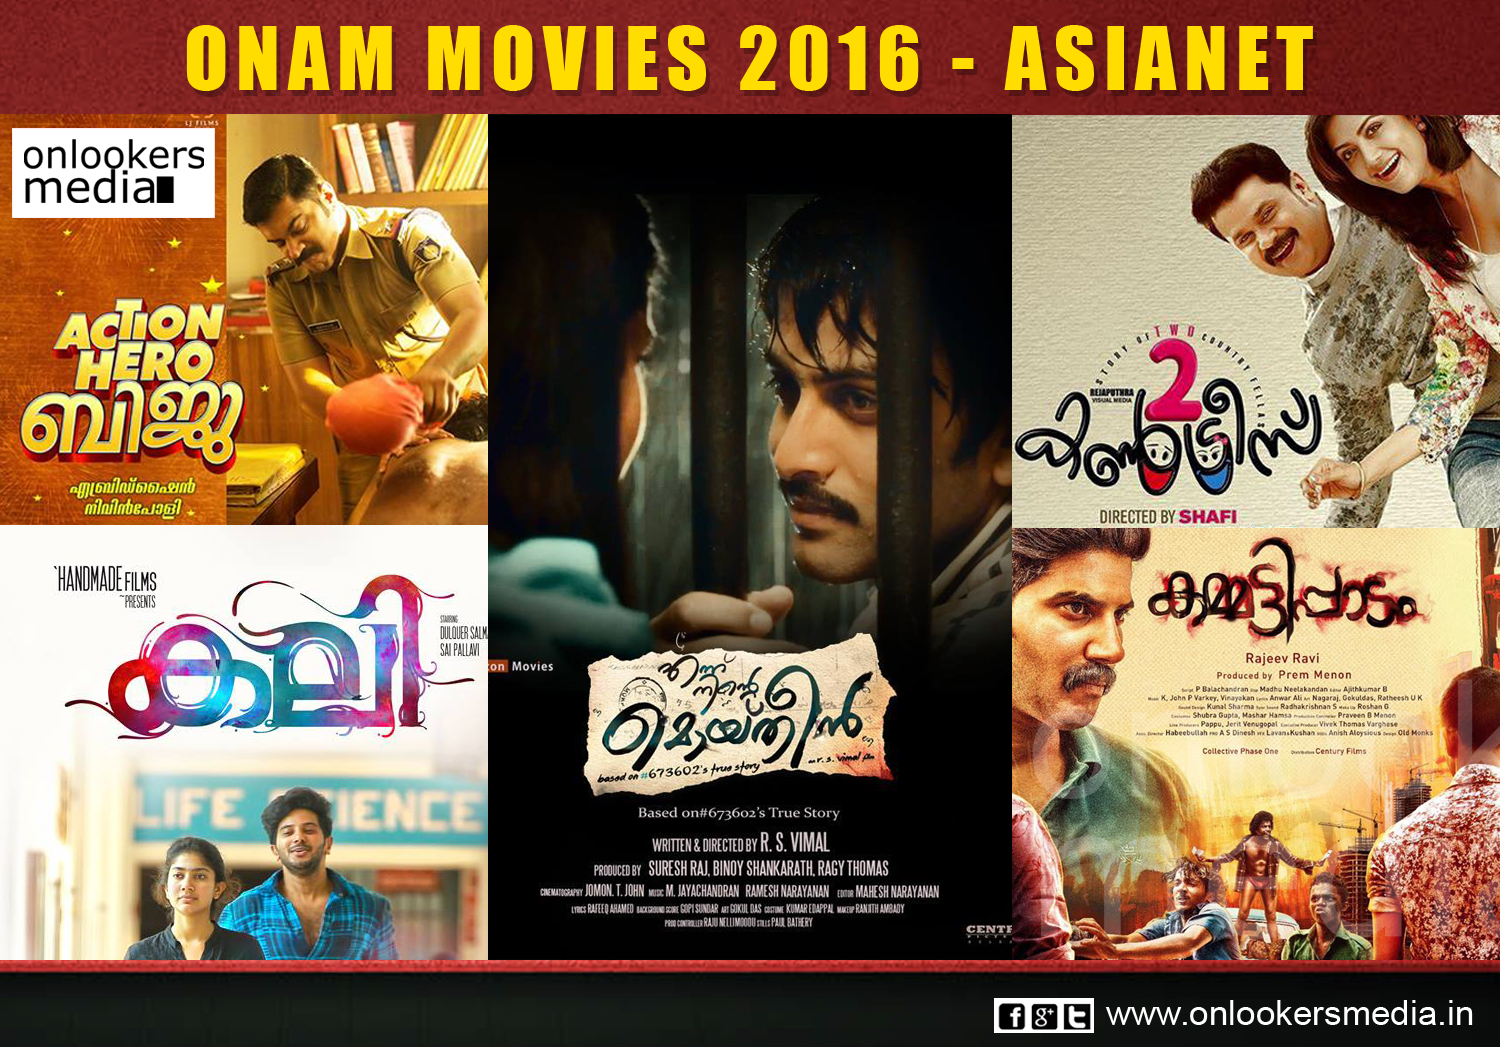 Onam 2016, Asianet, Surya TV, kasaba in tv, Surya TV onam movies 2016, asianet onam movies 2016